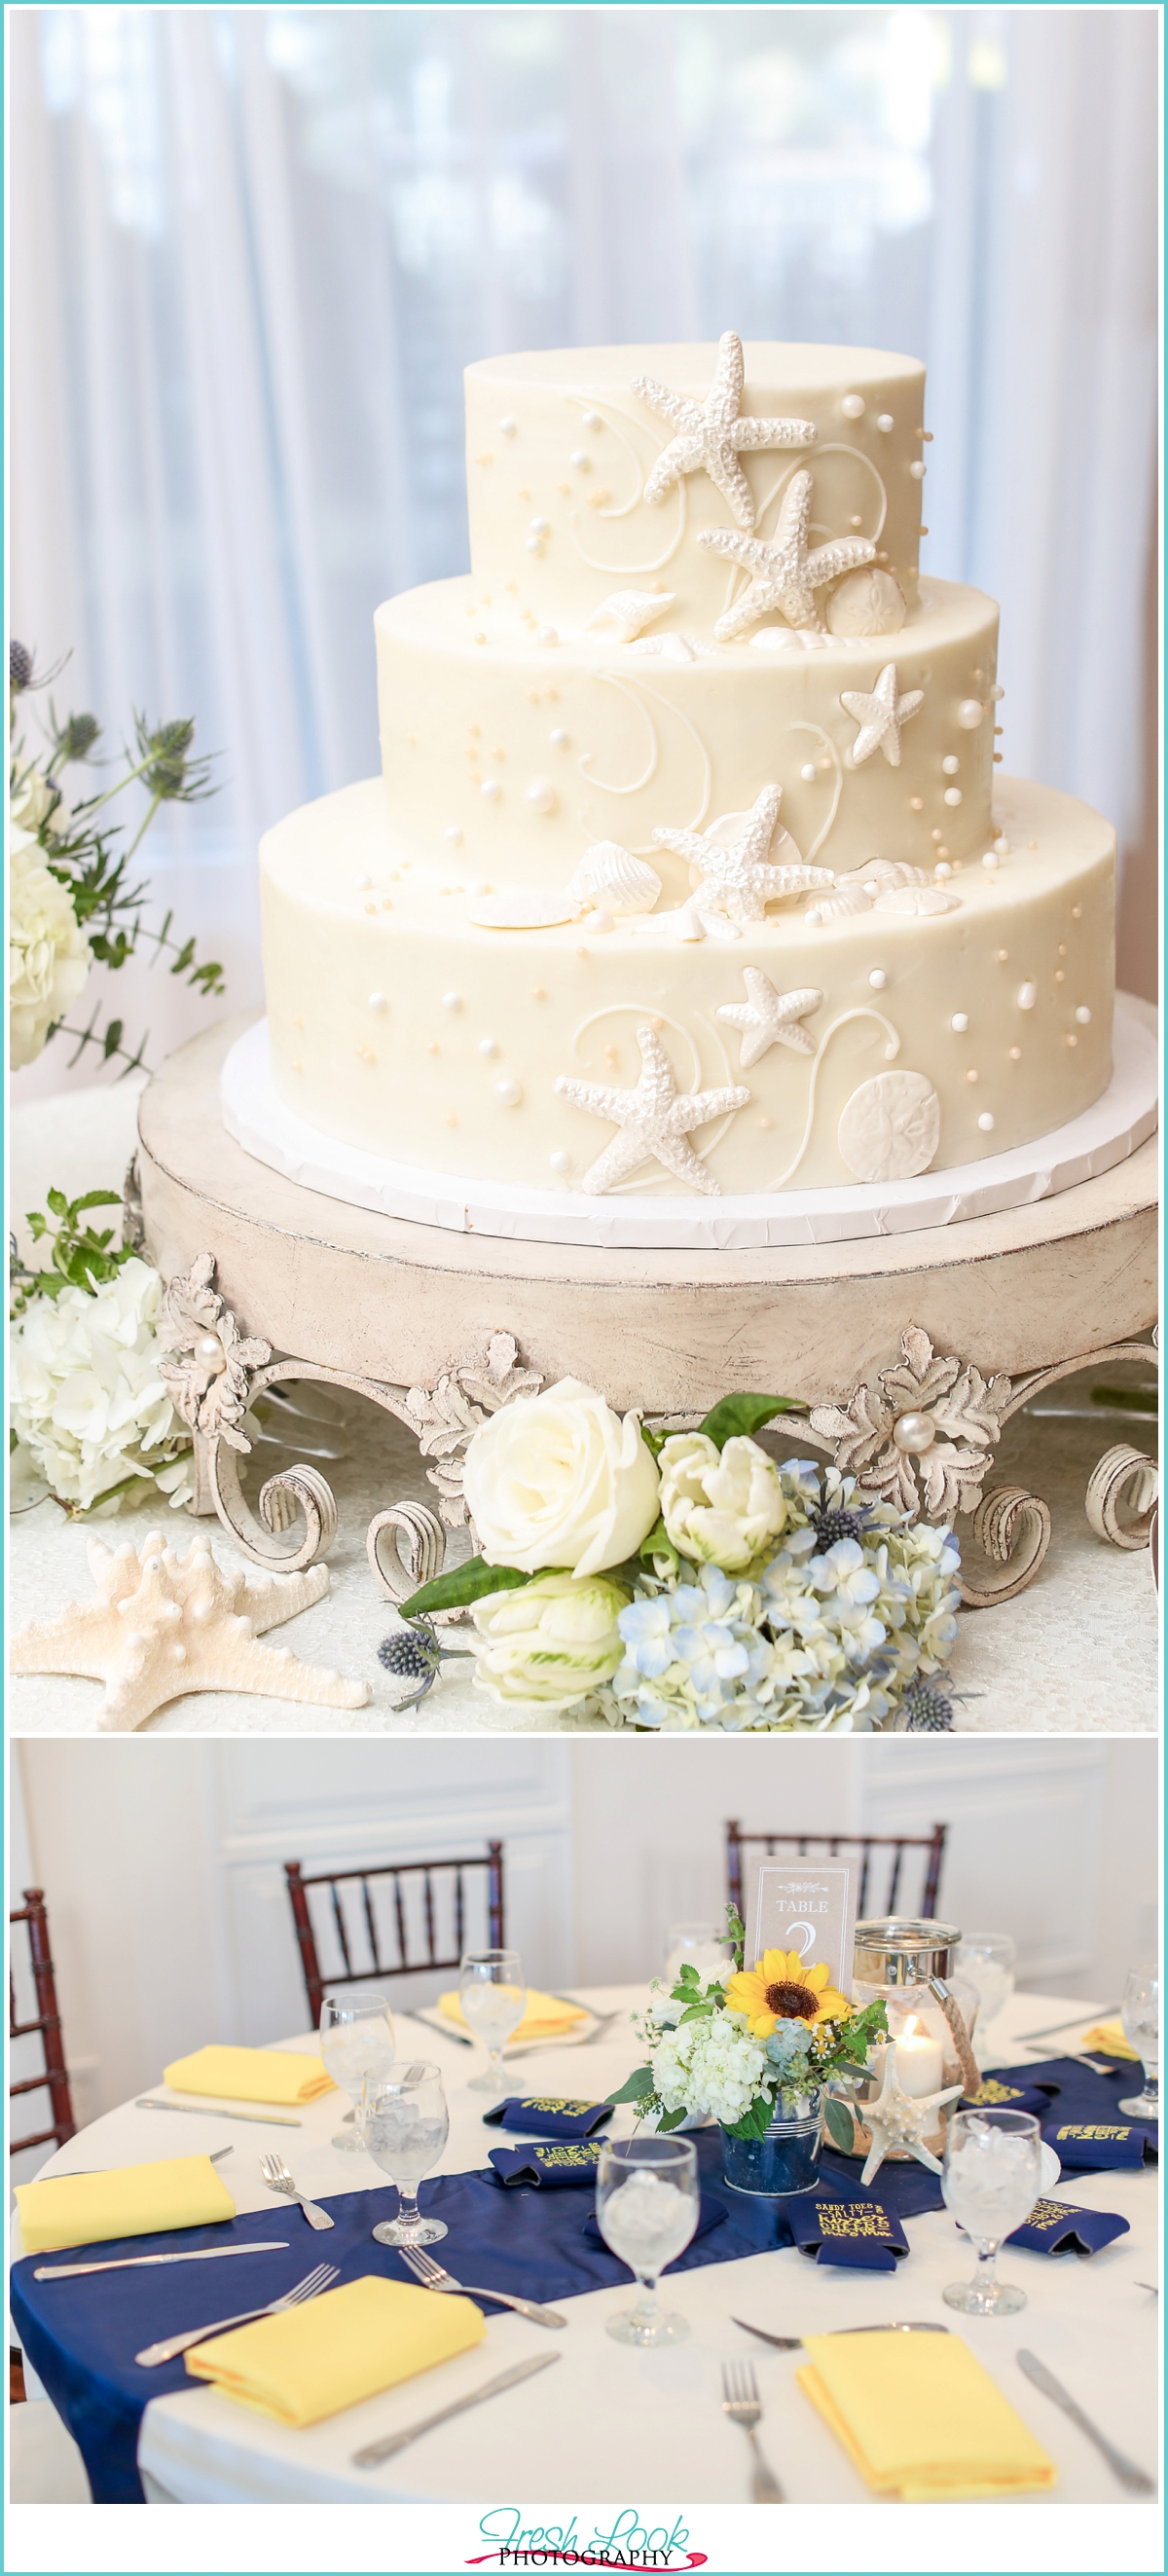 Wedding cake and navy and yellow decor